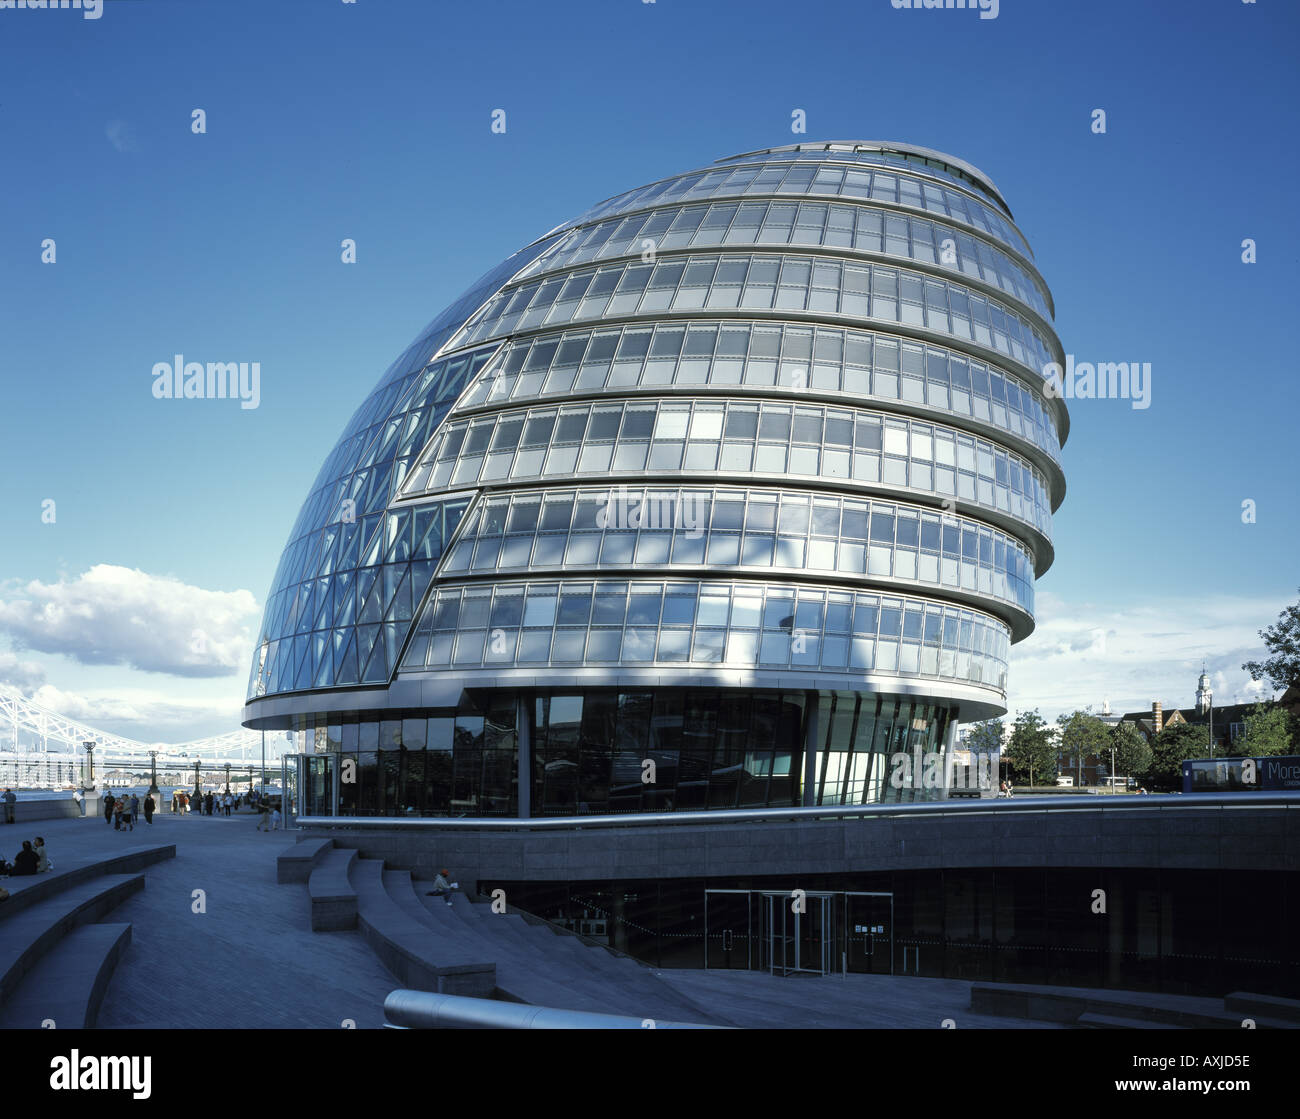 GREATER LONDON AUTHORITY CITY HALL - Stock Image